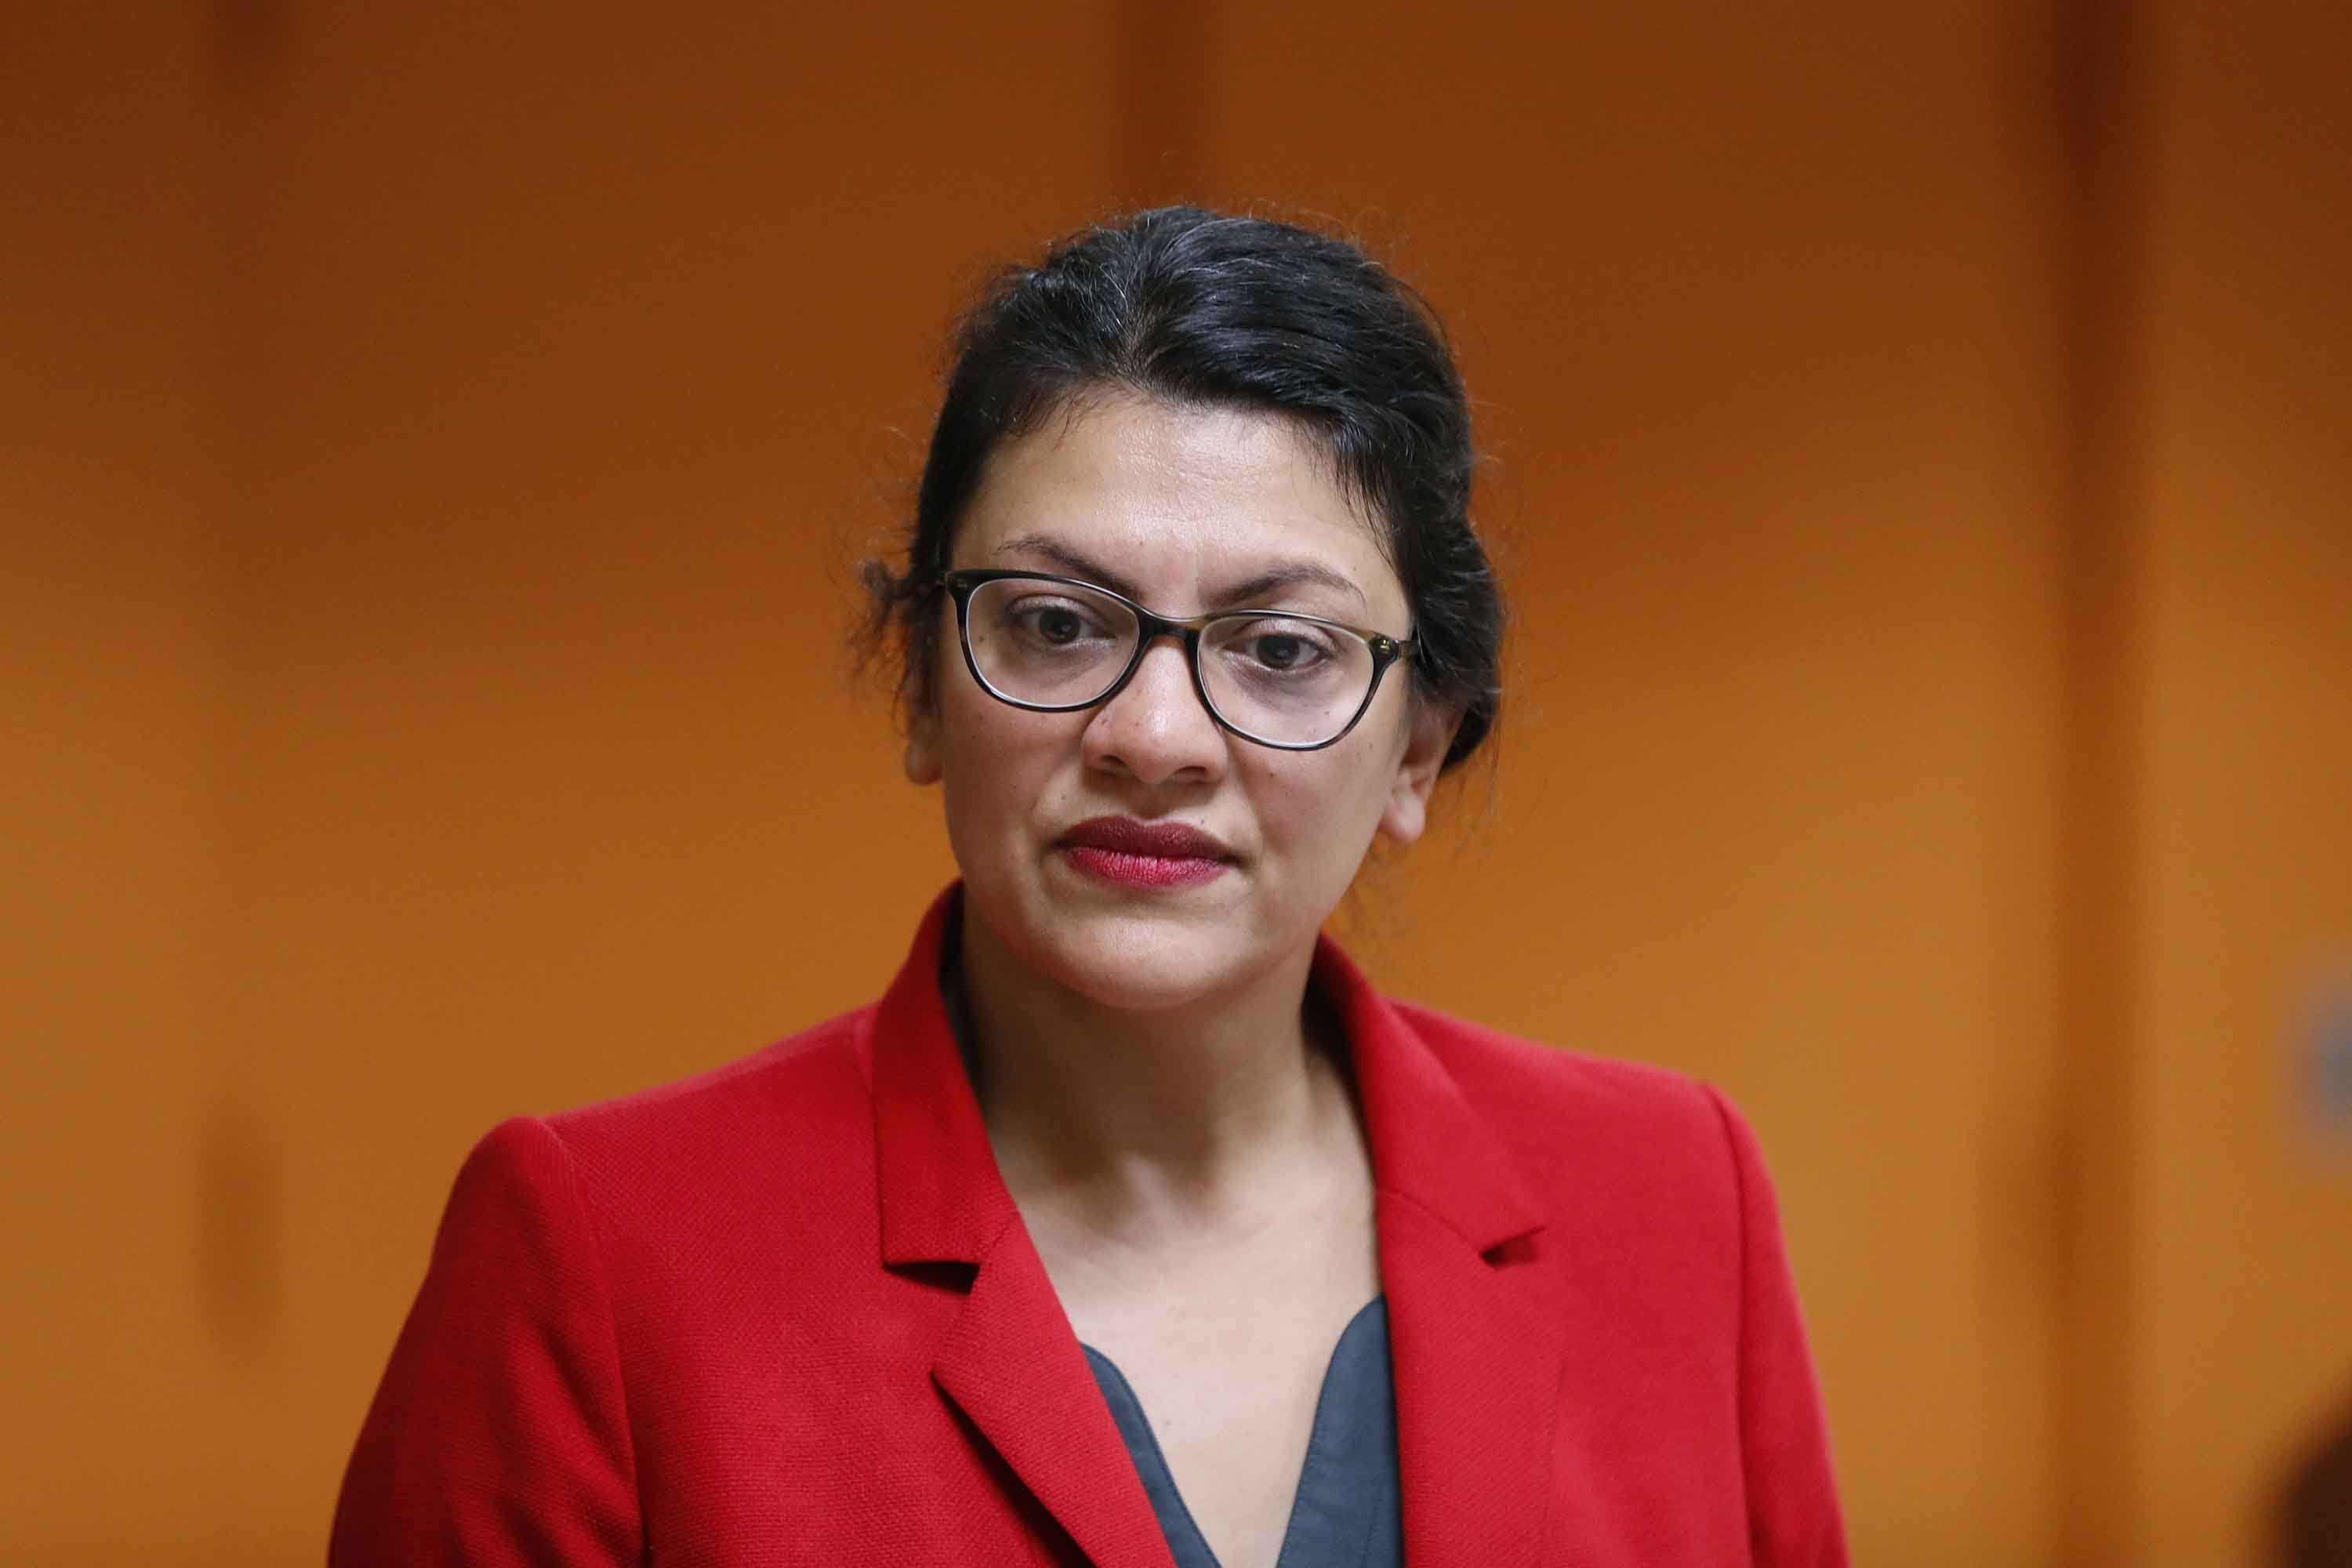 'I should be on a plane to see her': Tlaib emotional after decision not to visit grandmother in West Bank